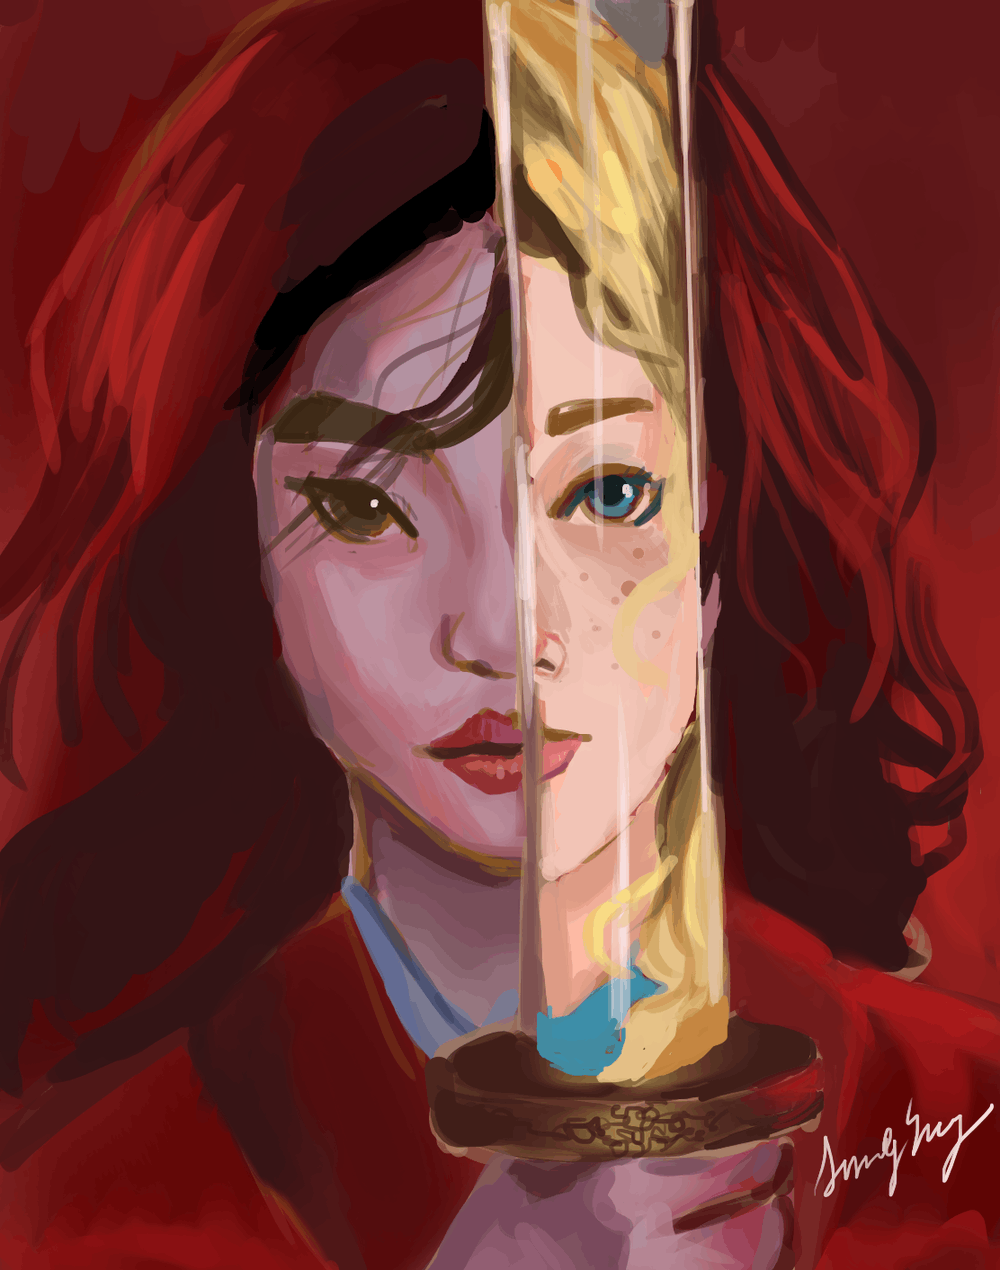 """<p>A reimagining of the poster for the 2020 remake of """"Mulan,"""" in which the reflection on Mulan's sword is of a white woman instead of her soldier form.</p> <p>Sandy Yang / The Daily Princetonian</p>"""